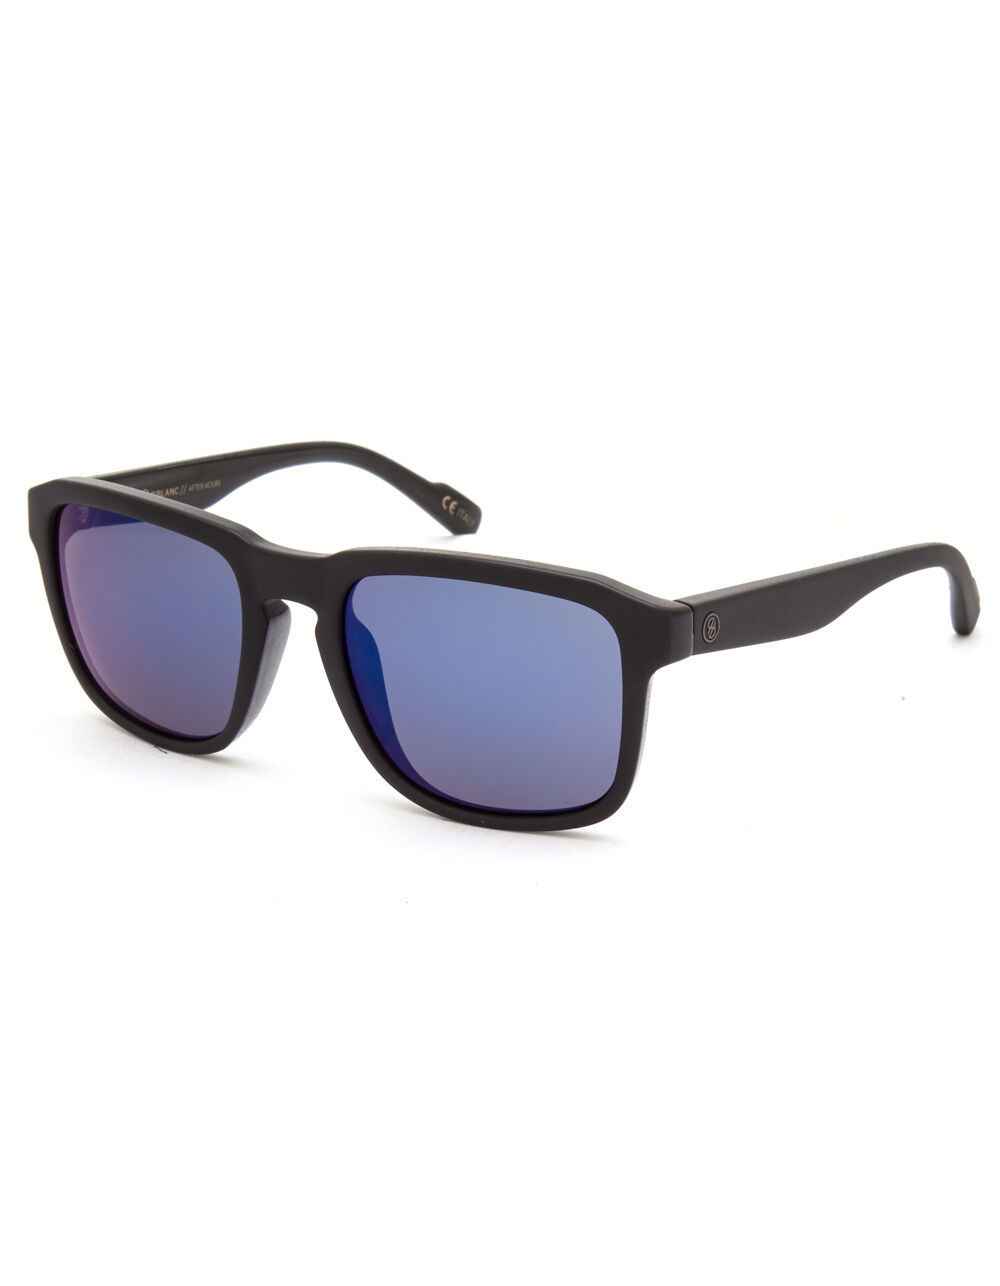 Image of D'BLANC AFTER HOURS SUNGLASSES